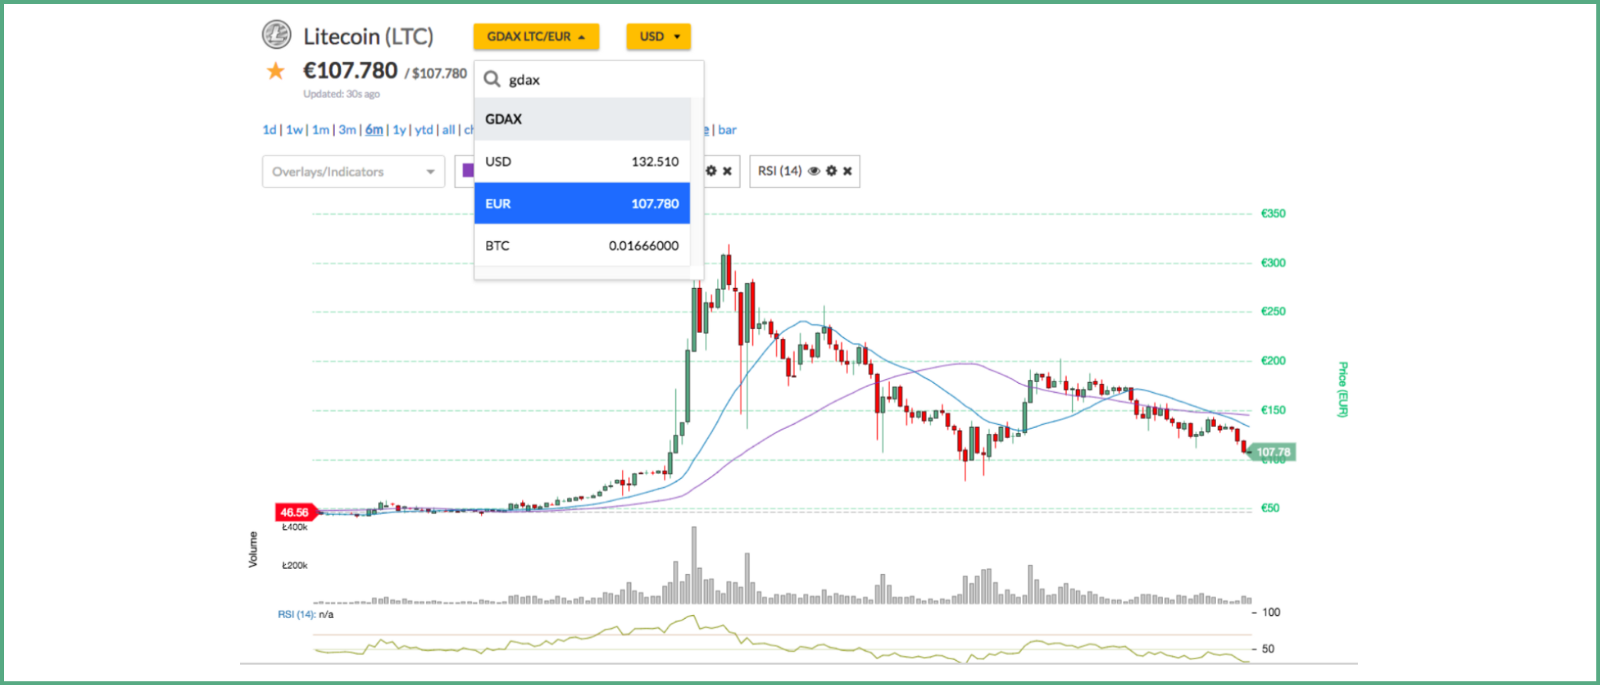 Bitscreener S New Feature Real Time Prices And Charts Of Trading Pairs From Nearly 100 Exchanges